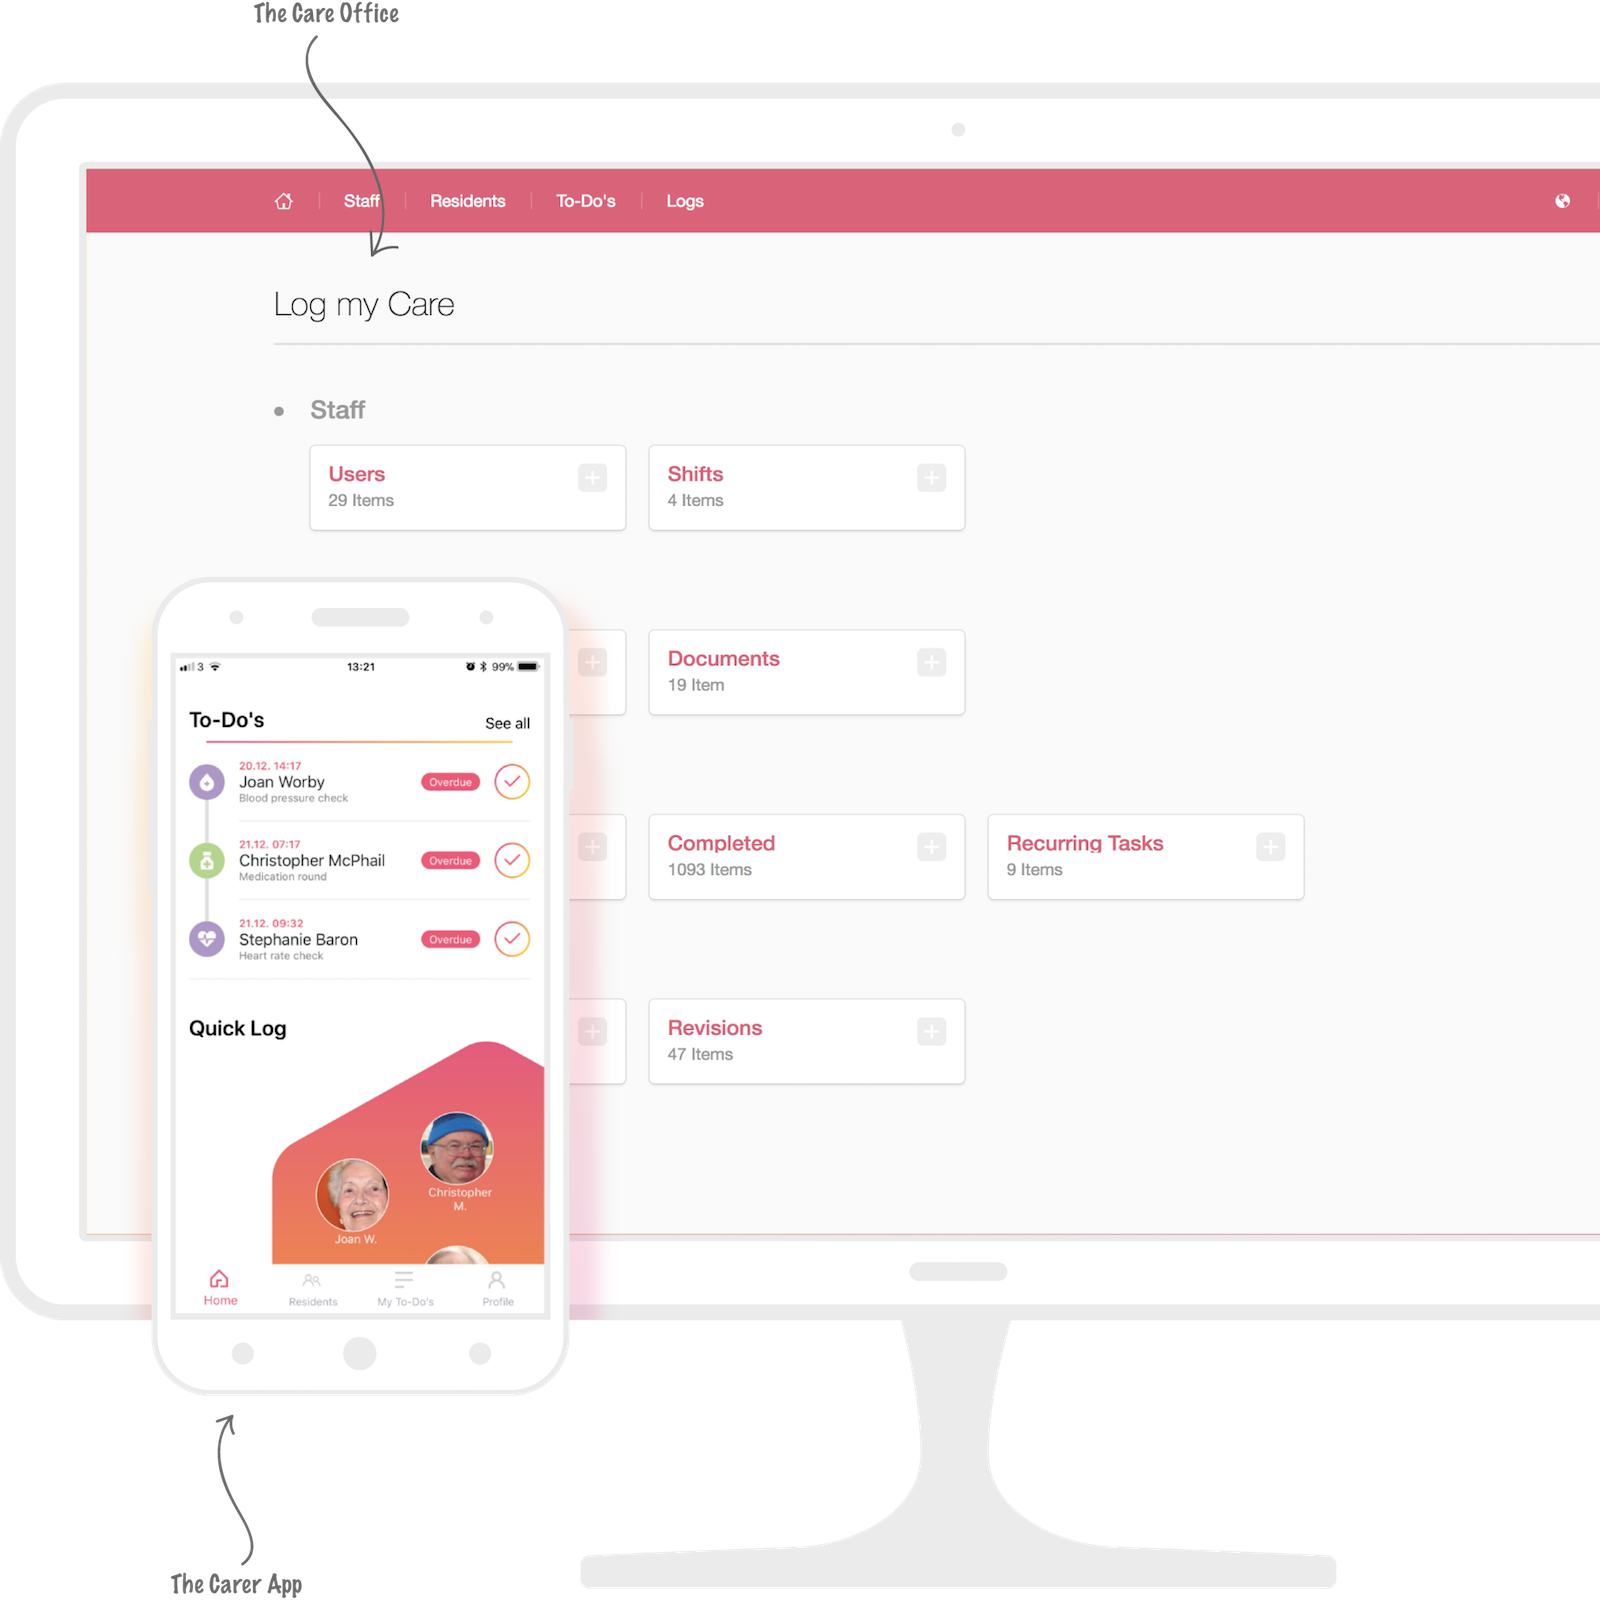 Log my Care Has A Simple Interface For It's Care Planning Software